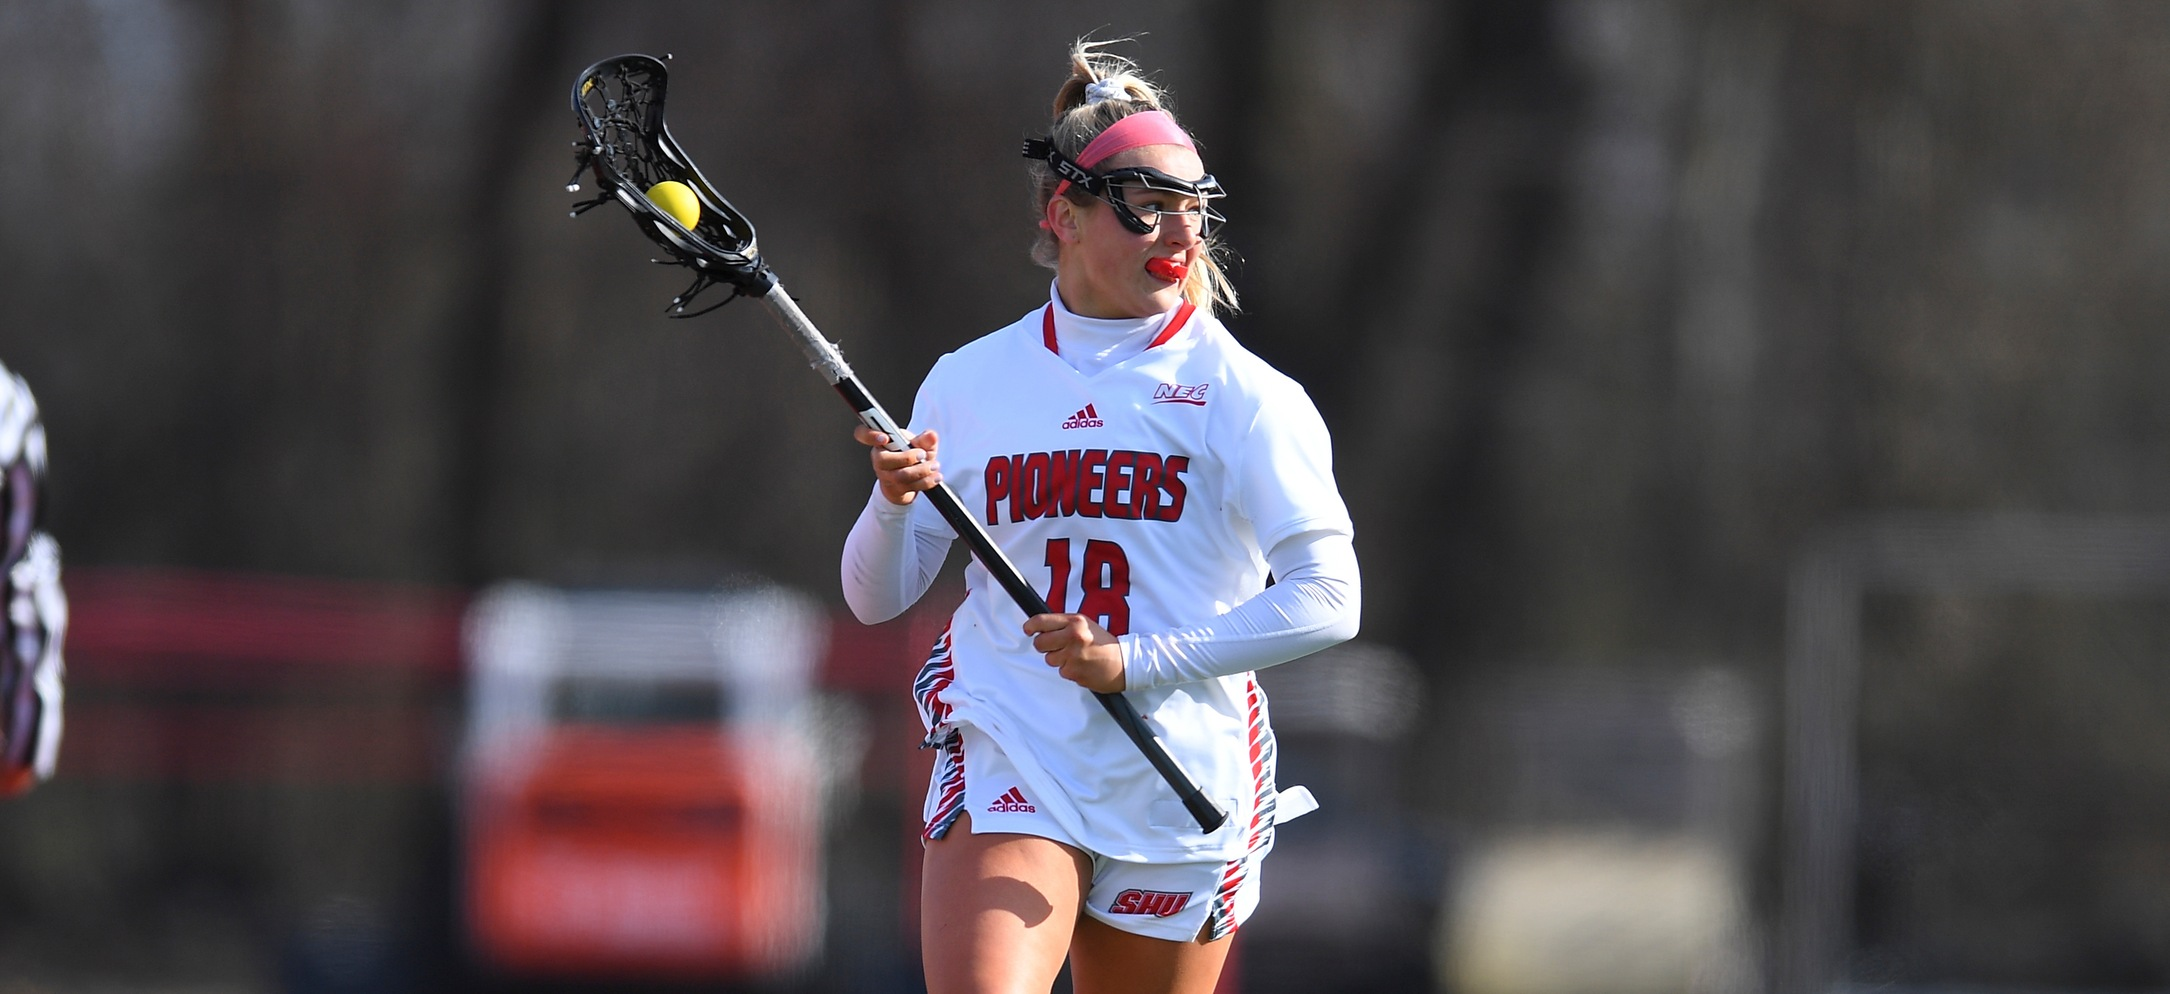 Claire McElhenny notched a career-best seven draw controls in the win over Delaware State (Photo: Steve McLaughlin)